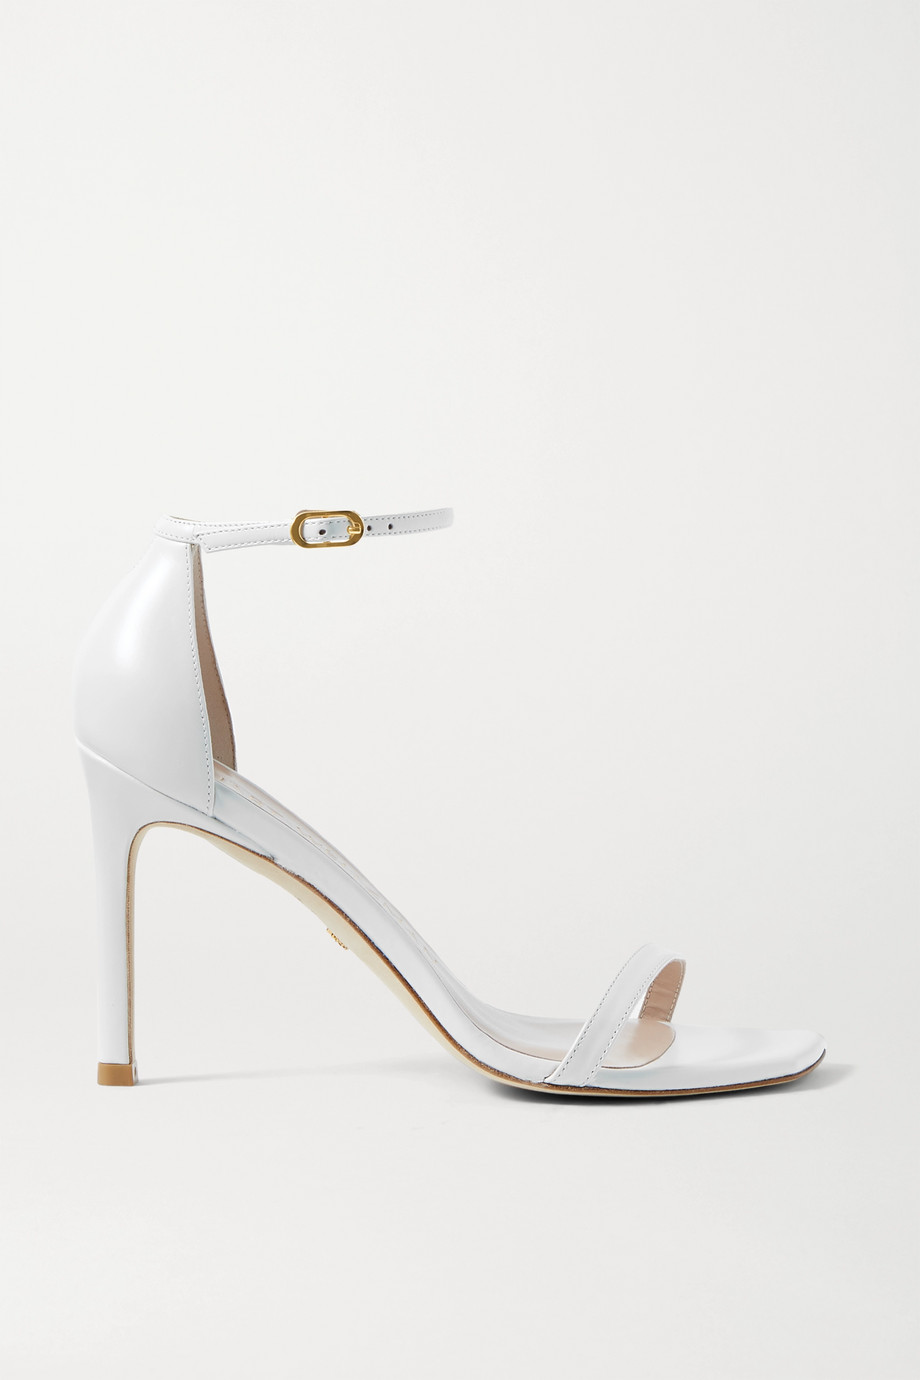 Stuart Weitzman Amelina leather sandals